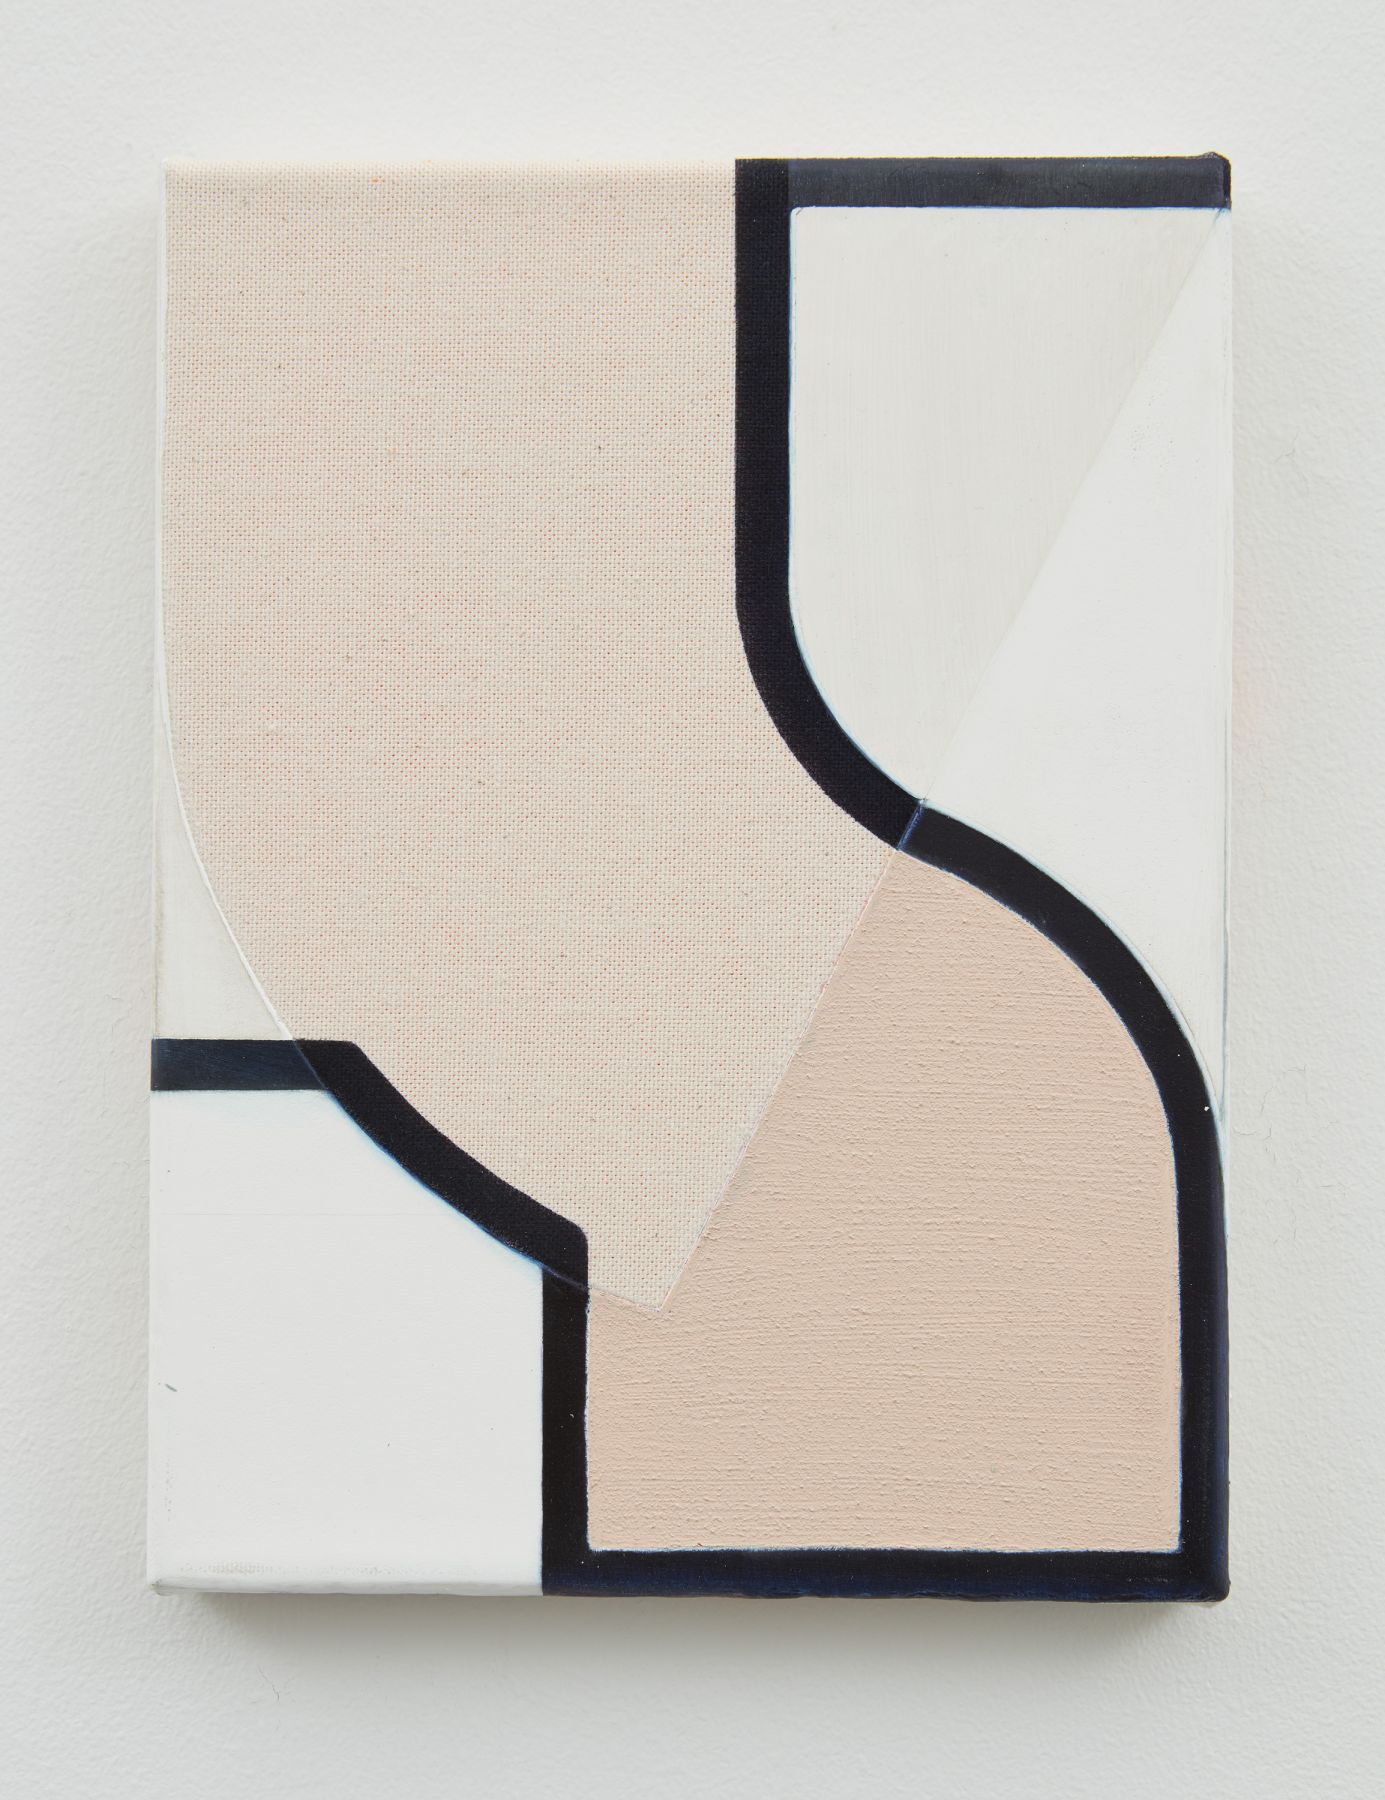 A pink and white abstract painting by Svenja Deininger